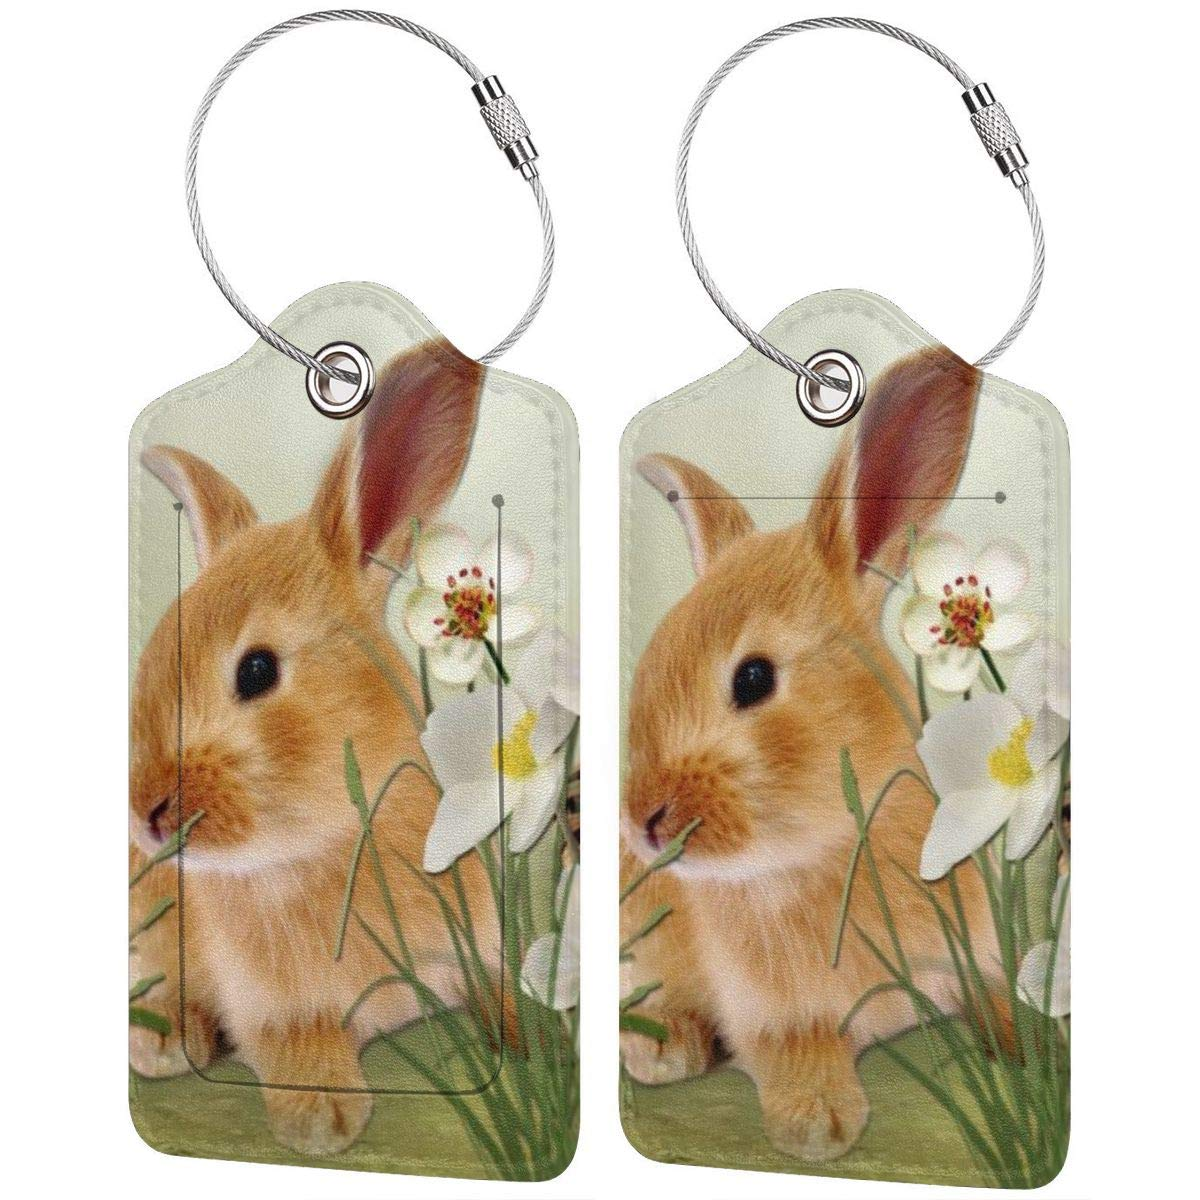 Summer Bunny Strawberries Travel Luggage Tags With Full Privacy Cover Leather Case And Stainless Steel Loop